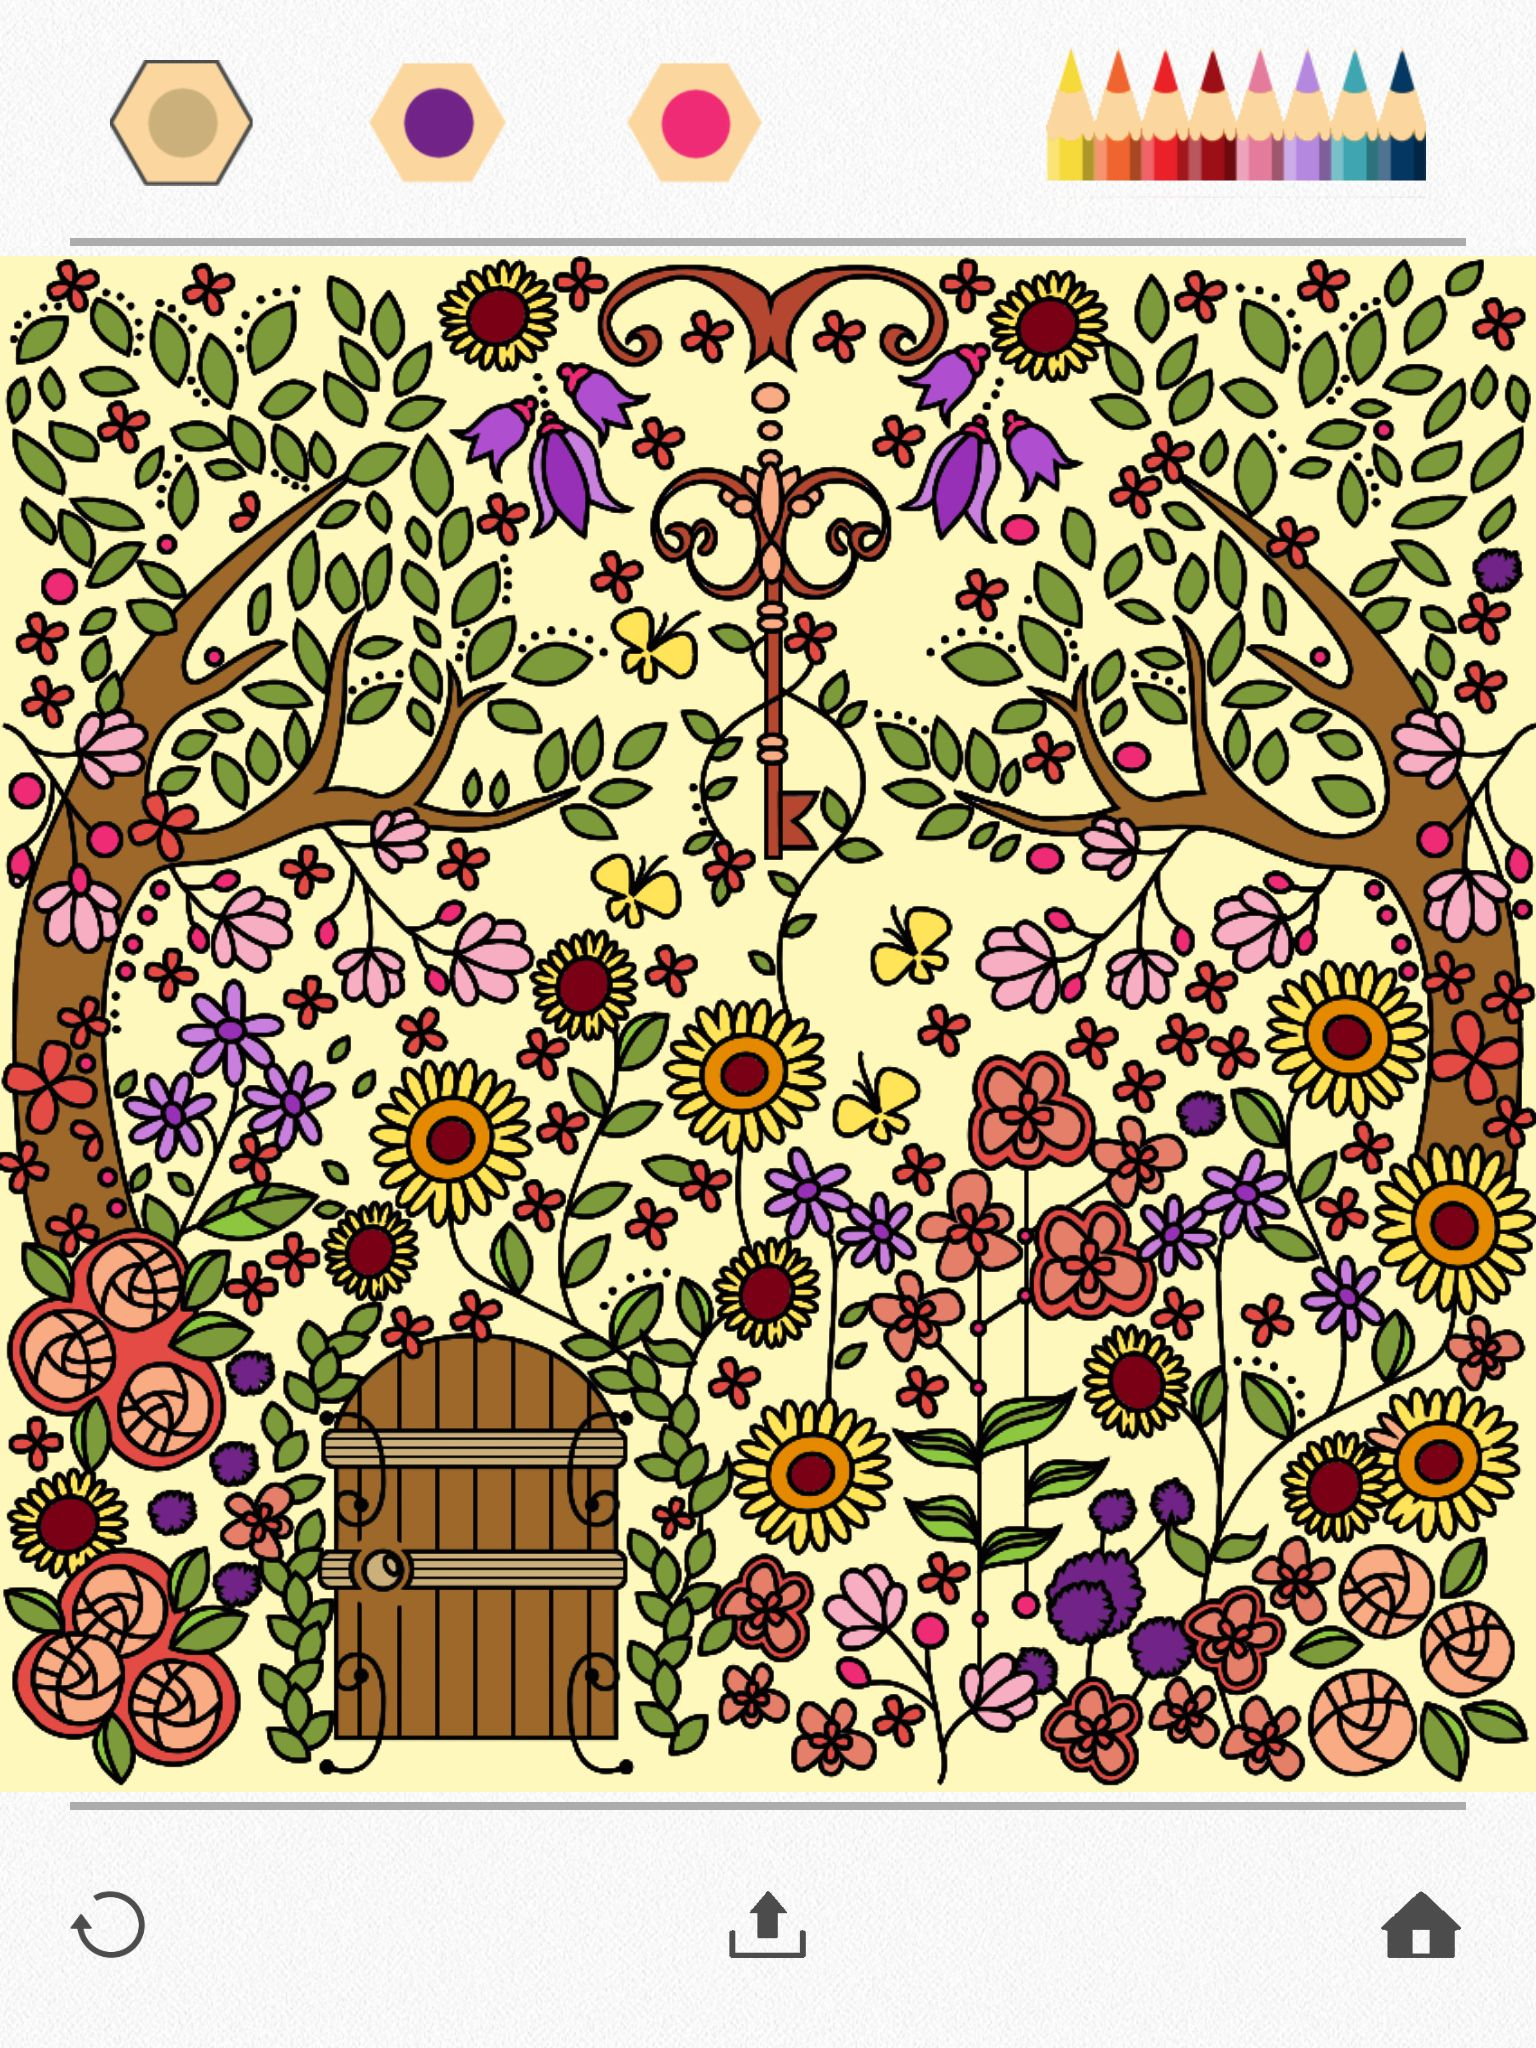 Colorful coloring book for adults download - Color A Beautiful Garden Using Colorfy Online Coloring Book For Adults Download It For